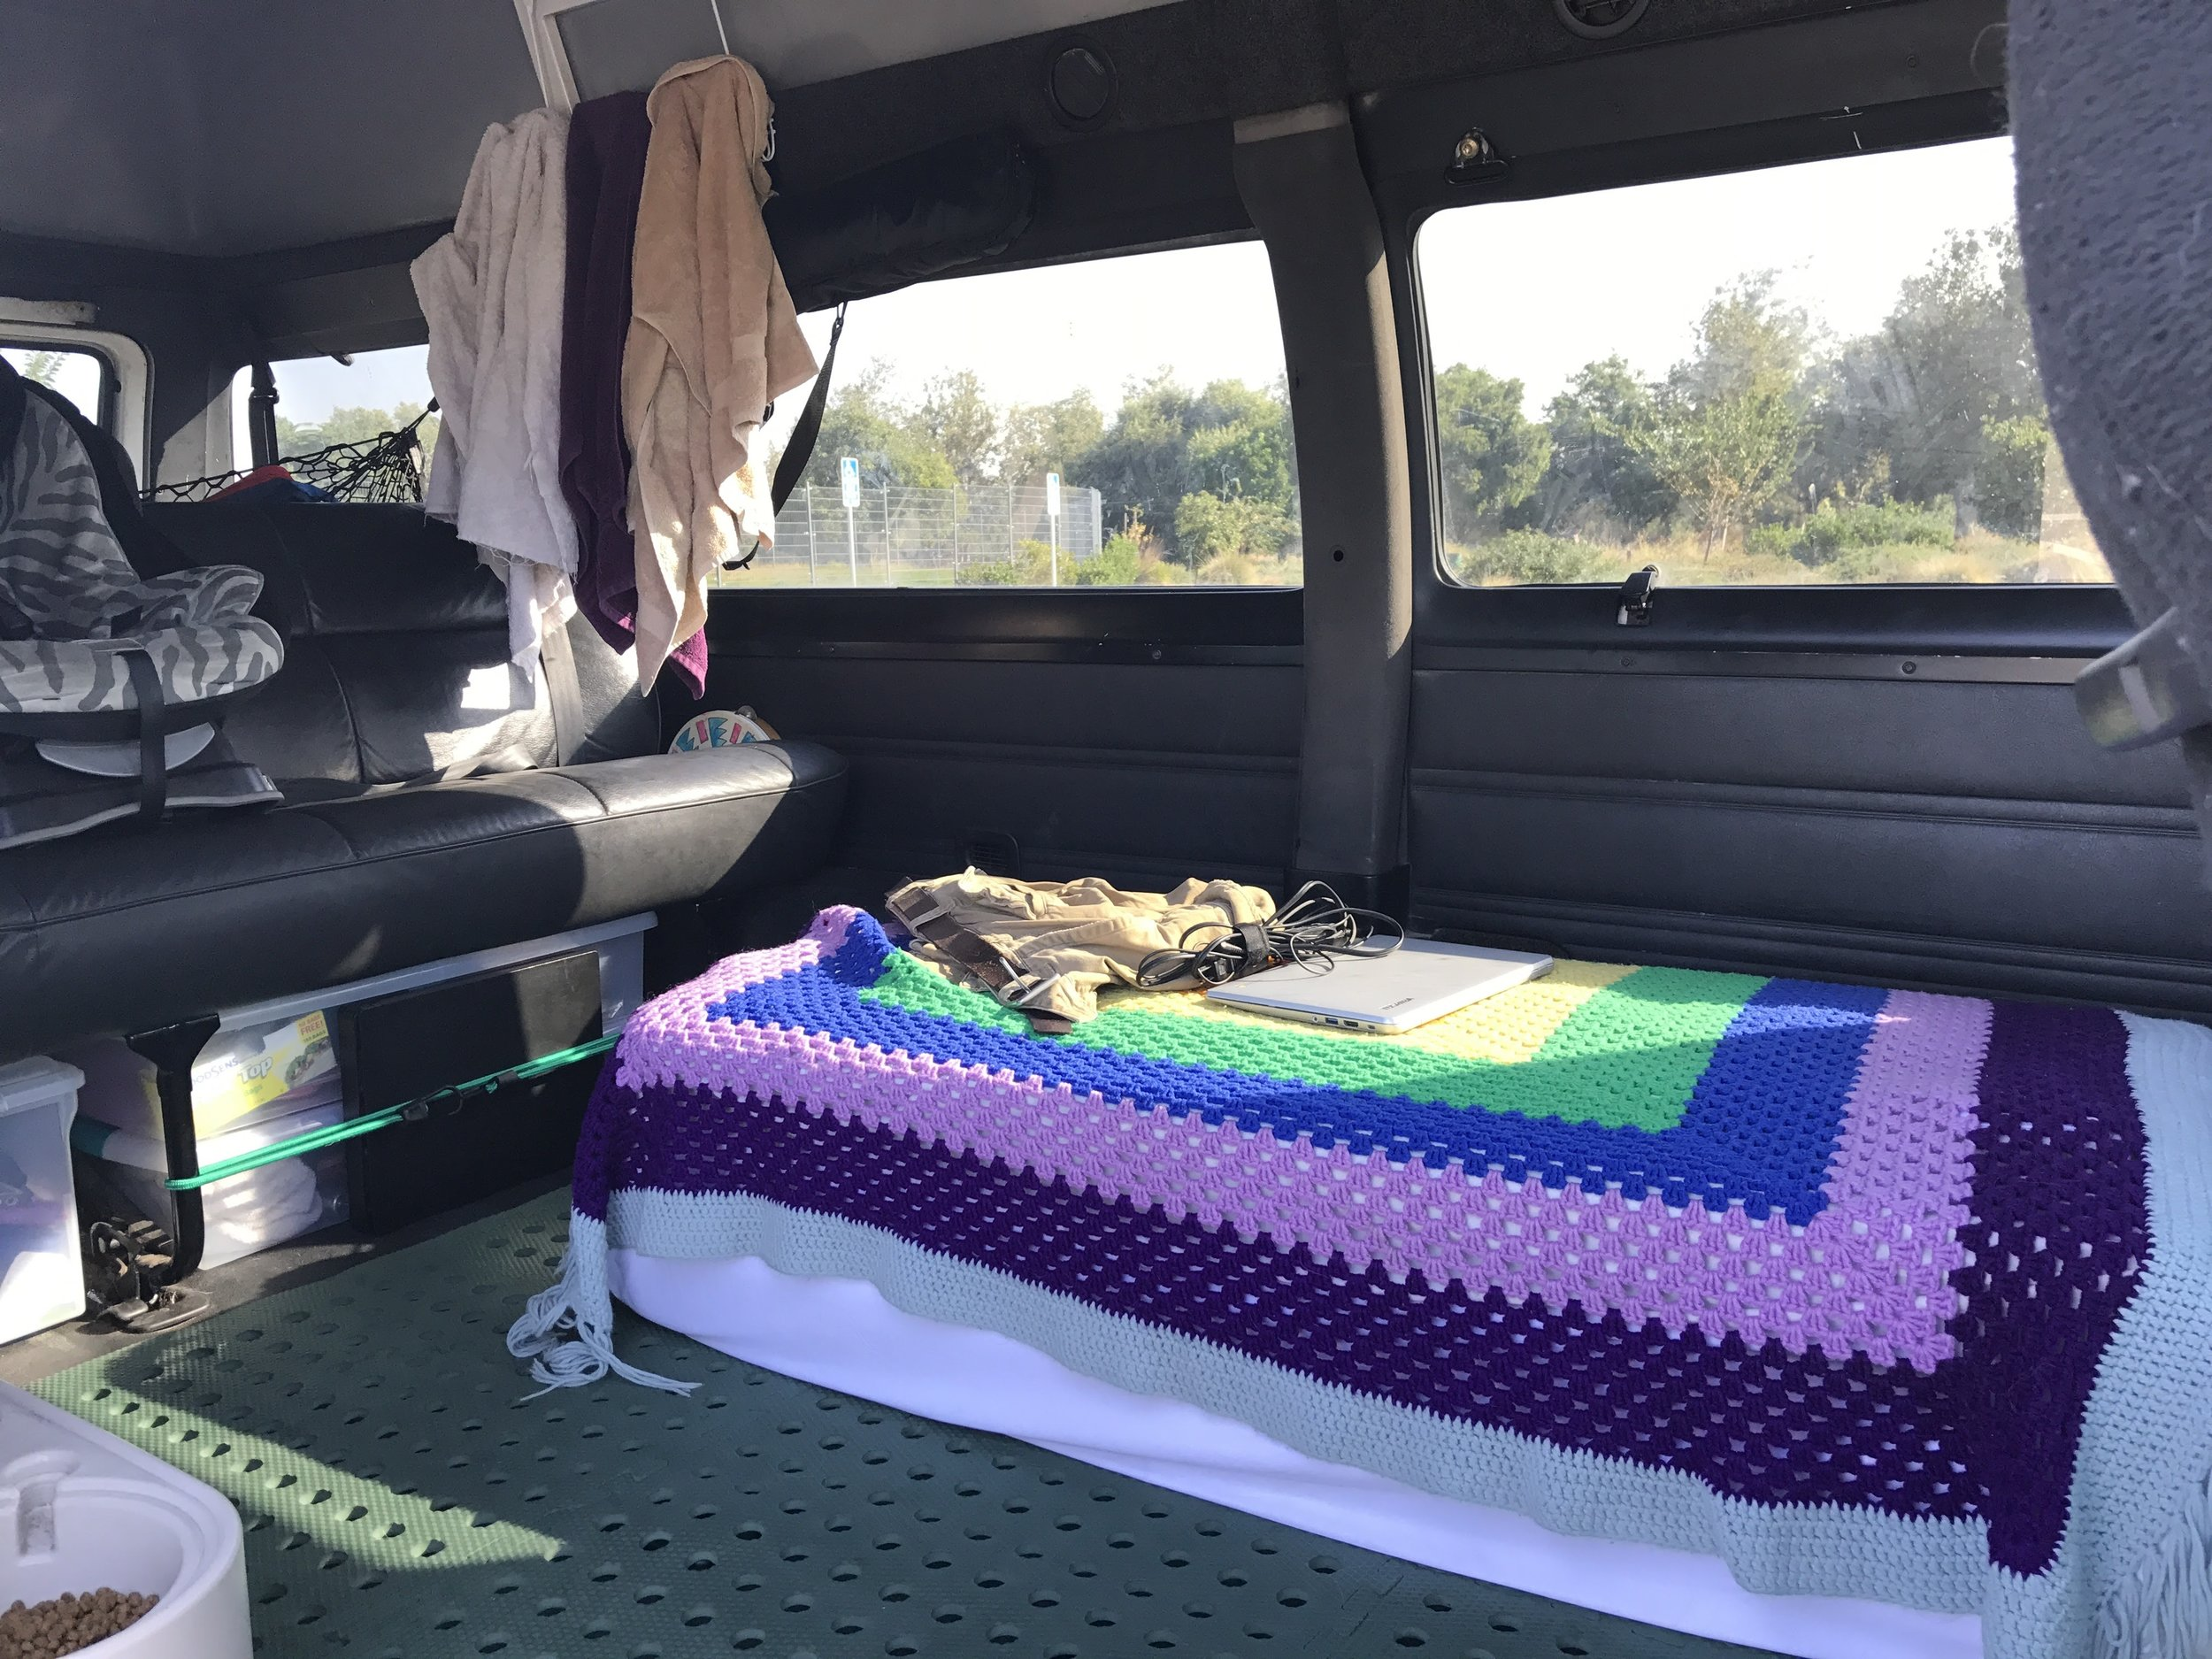 An average living room look into the van. The bed is folded up being used as a couch.